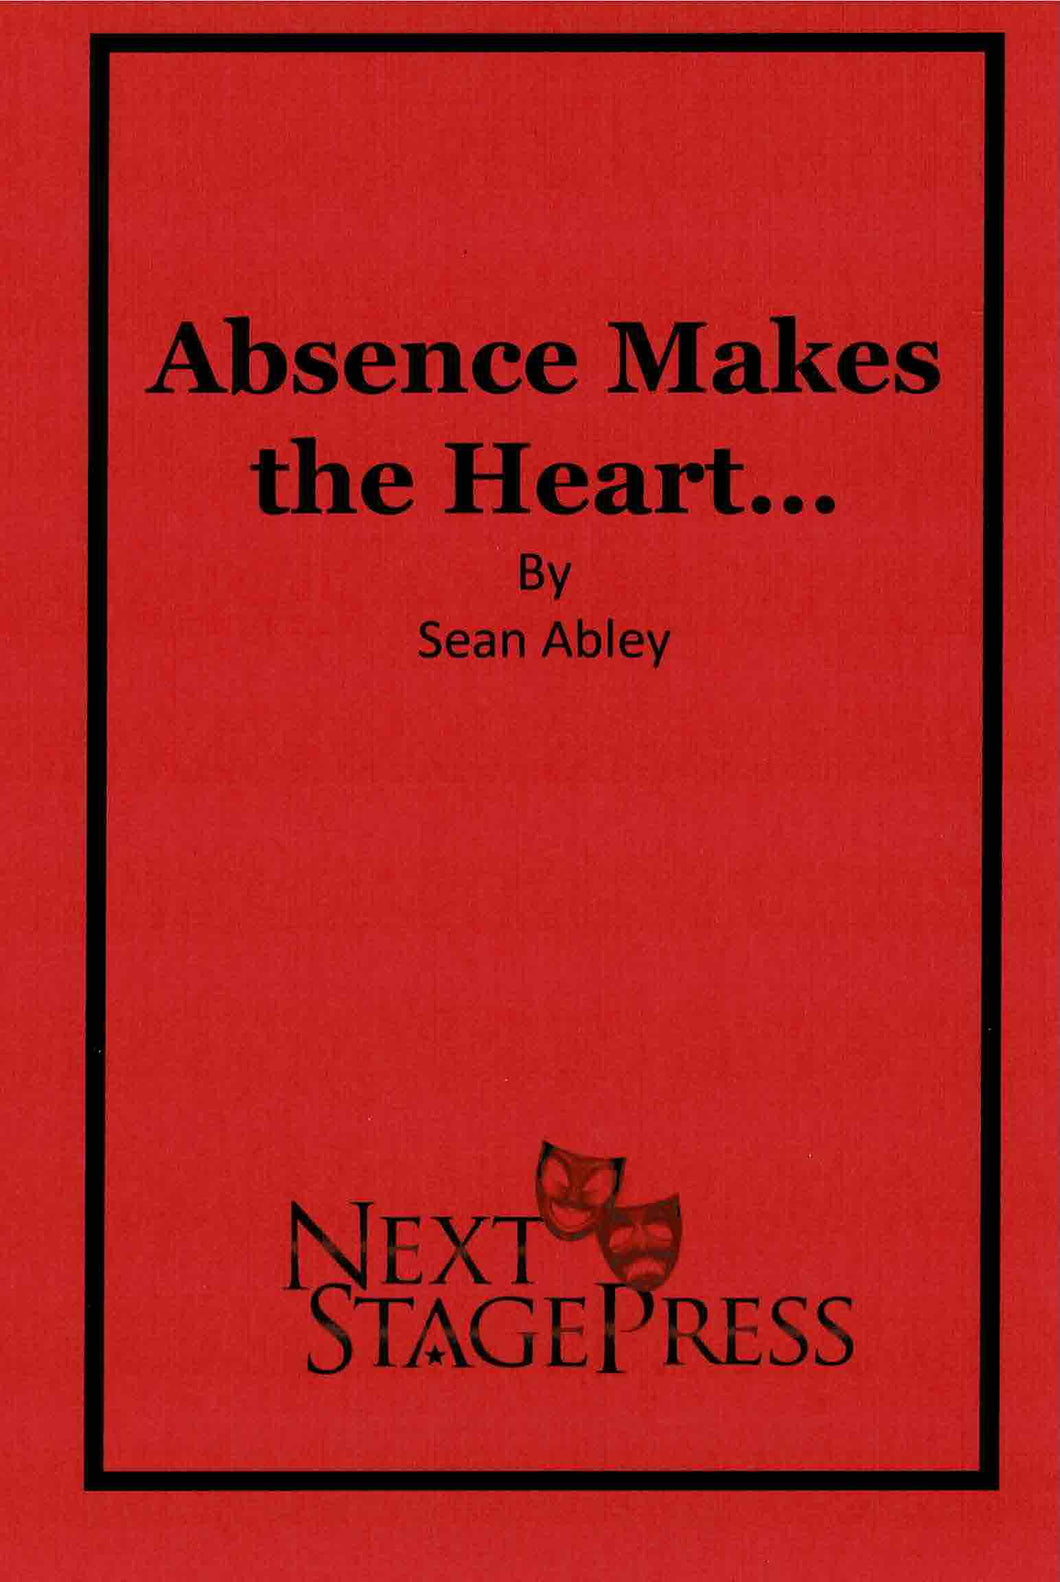 Absence Makes the Heart...